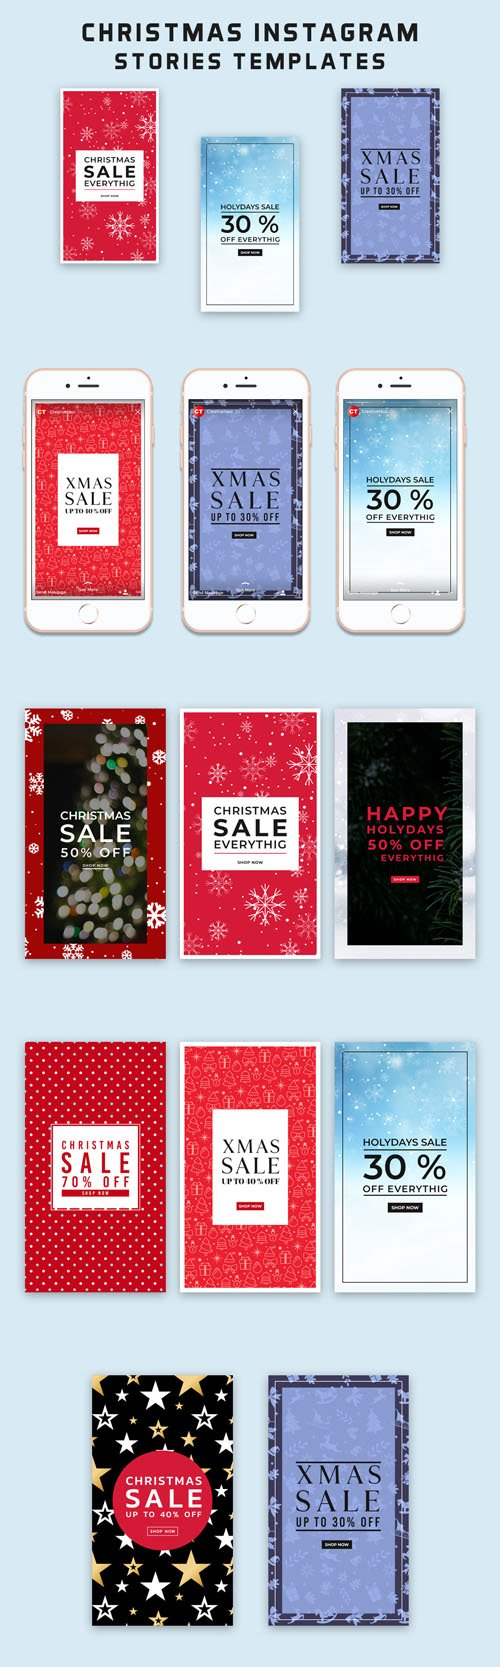 Christmas Instagram Stories PSD Templates